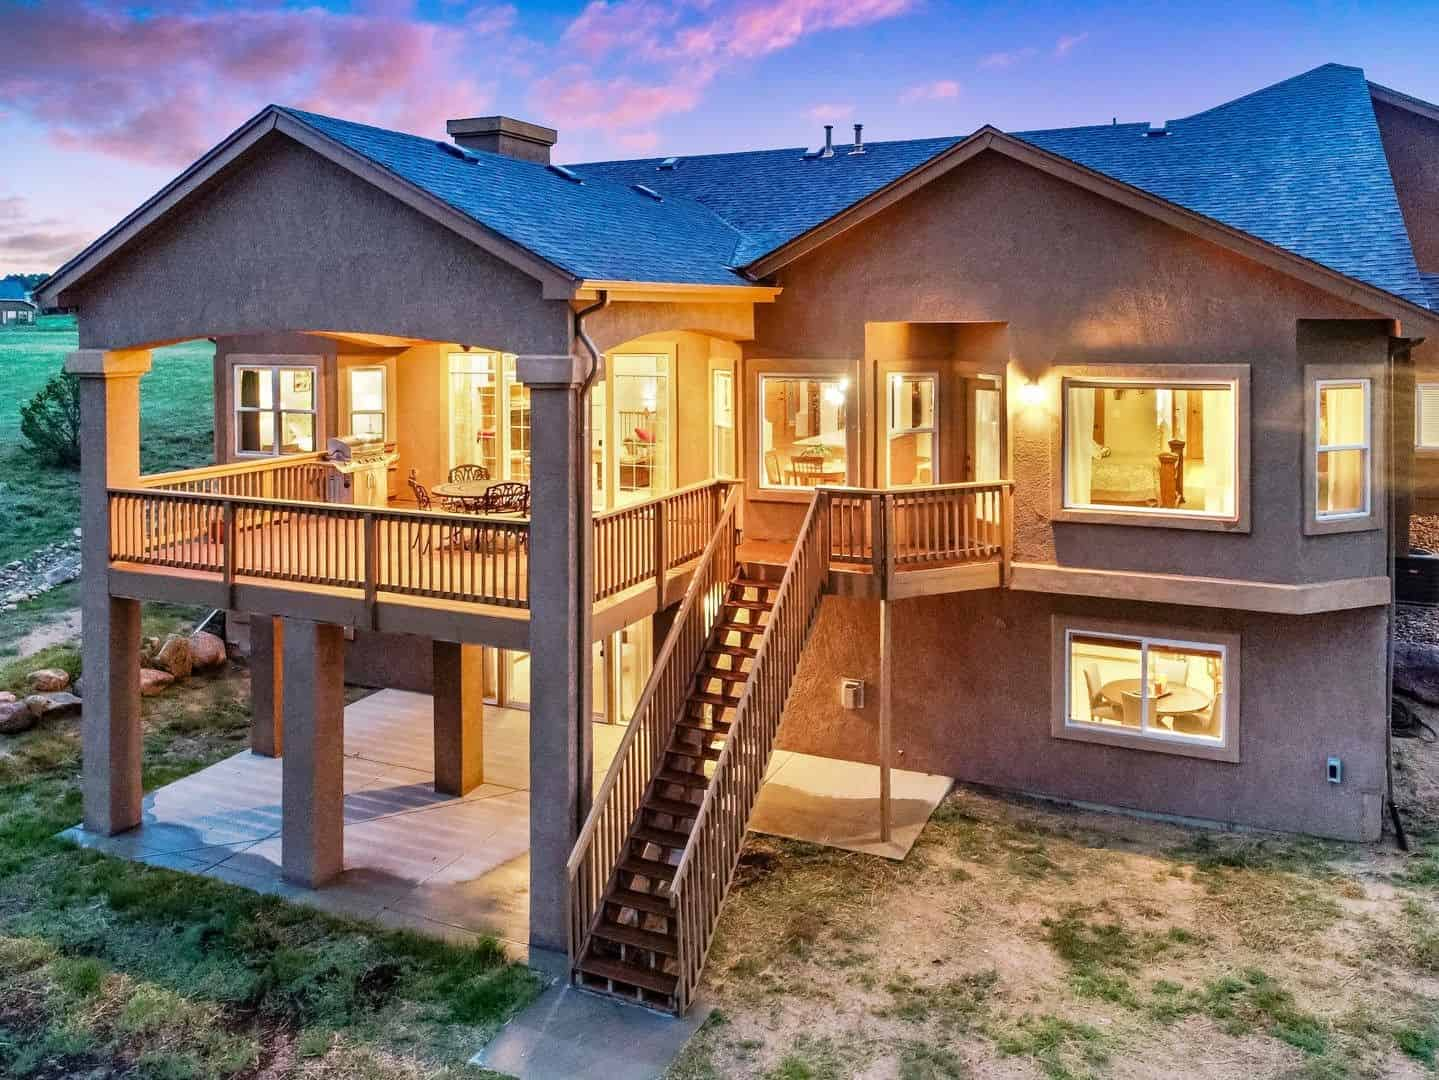 Sunset Views of Deck and Patio